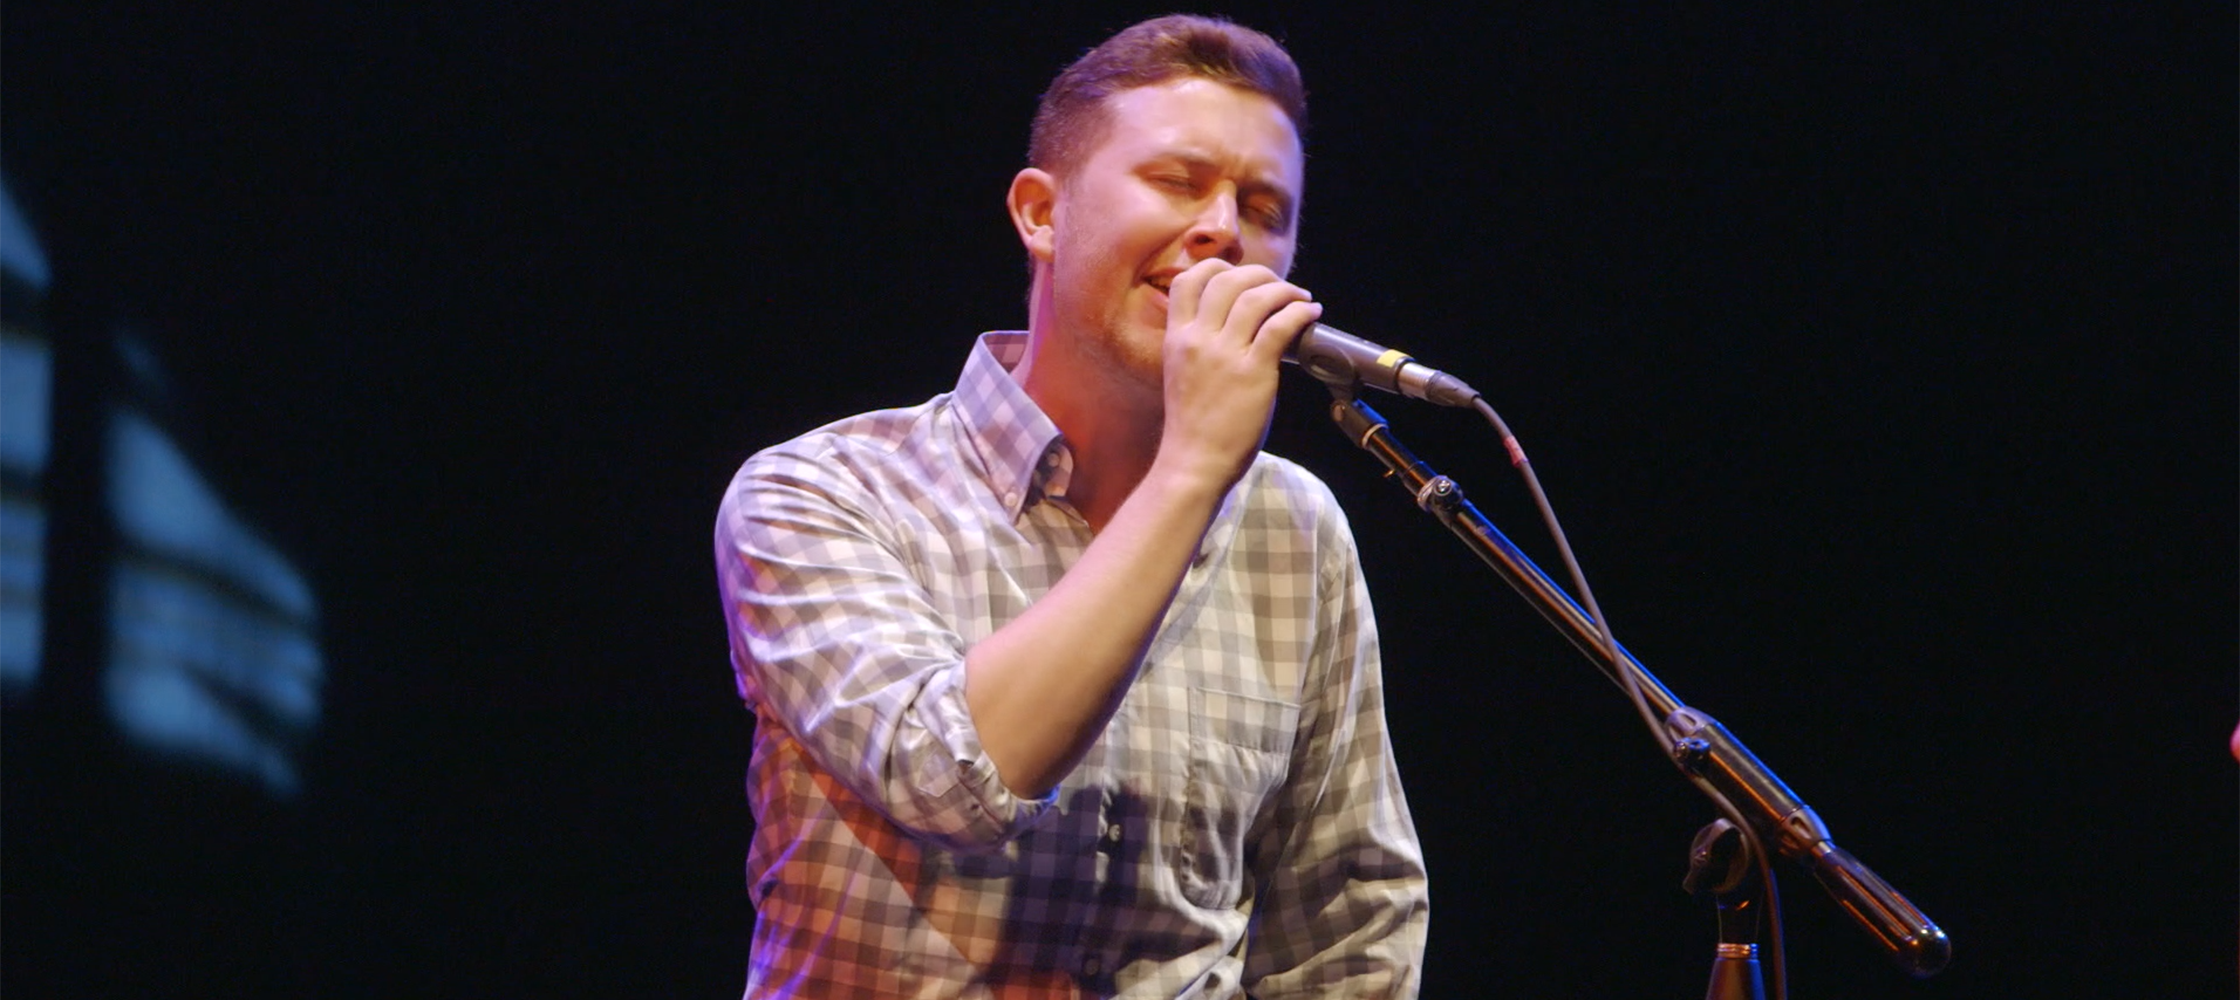 Scotty McCreery sings at Duke's World Voice Day celebration in March